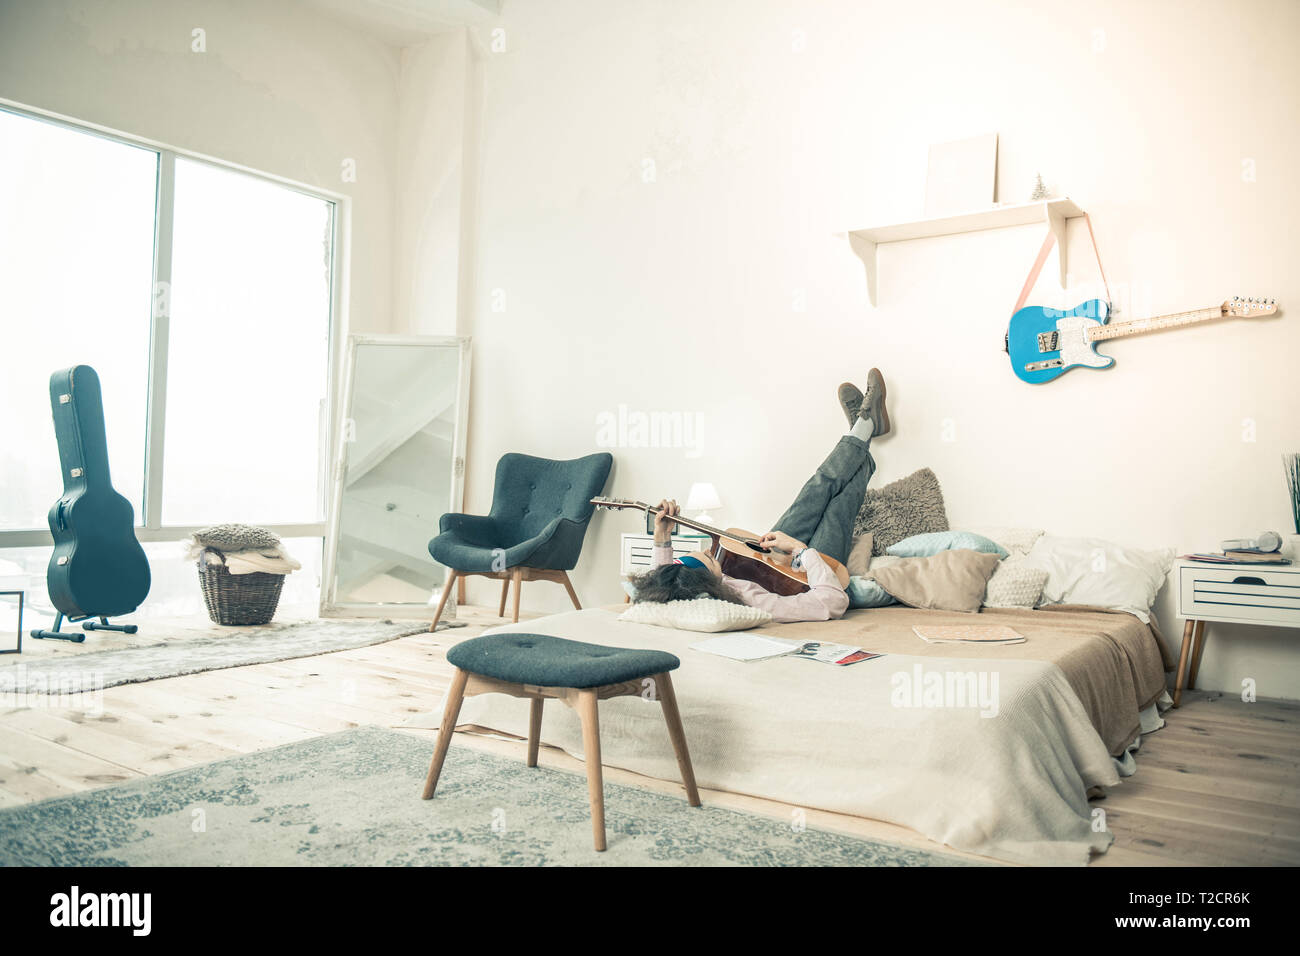 Good Looking Artist Lying On Bed In Bright Stylish Bedroom Stock Photo Alamy